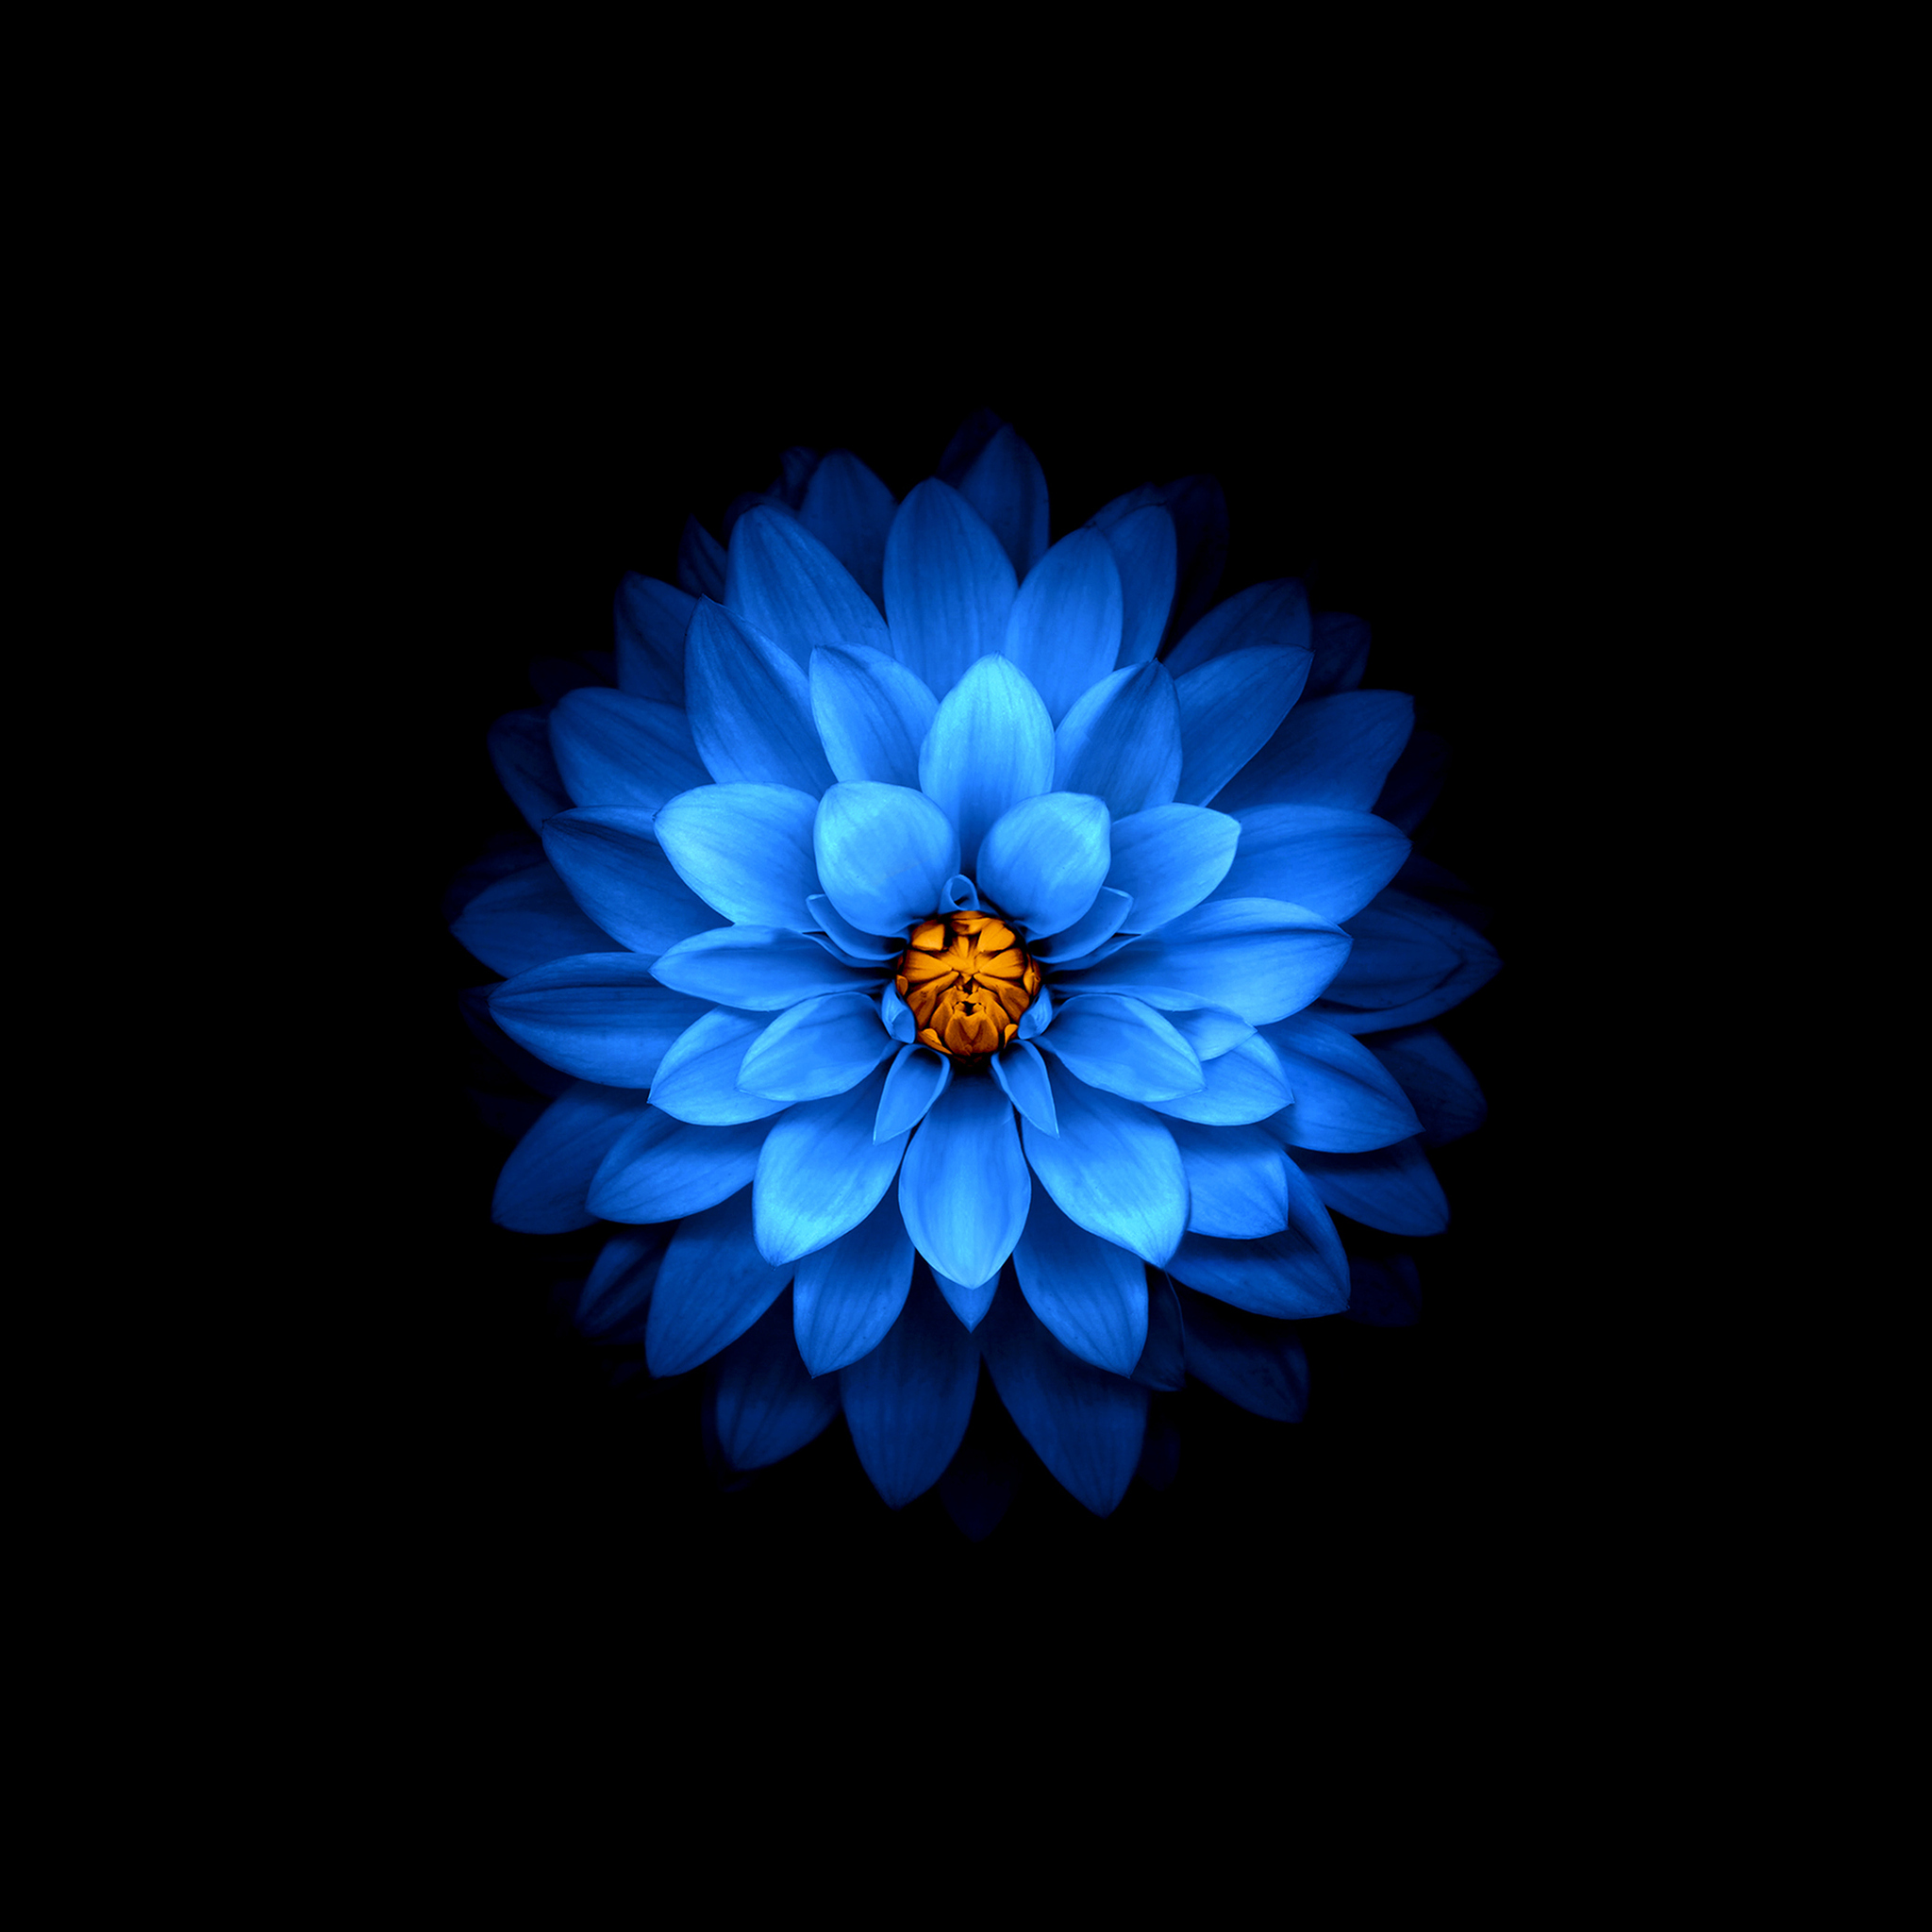 2048x2048 Flower Mod Ipad Air HD 4k Wallpapers, Images